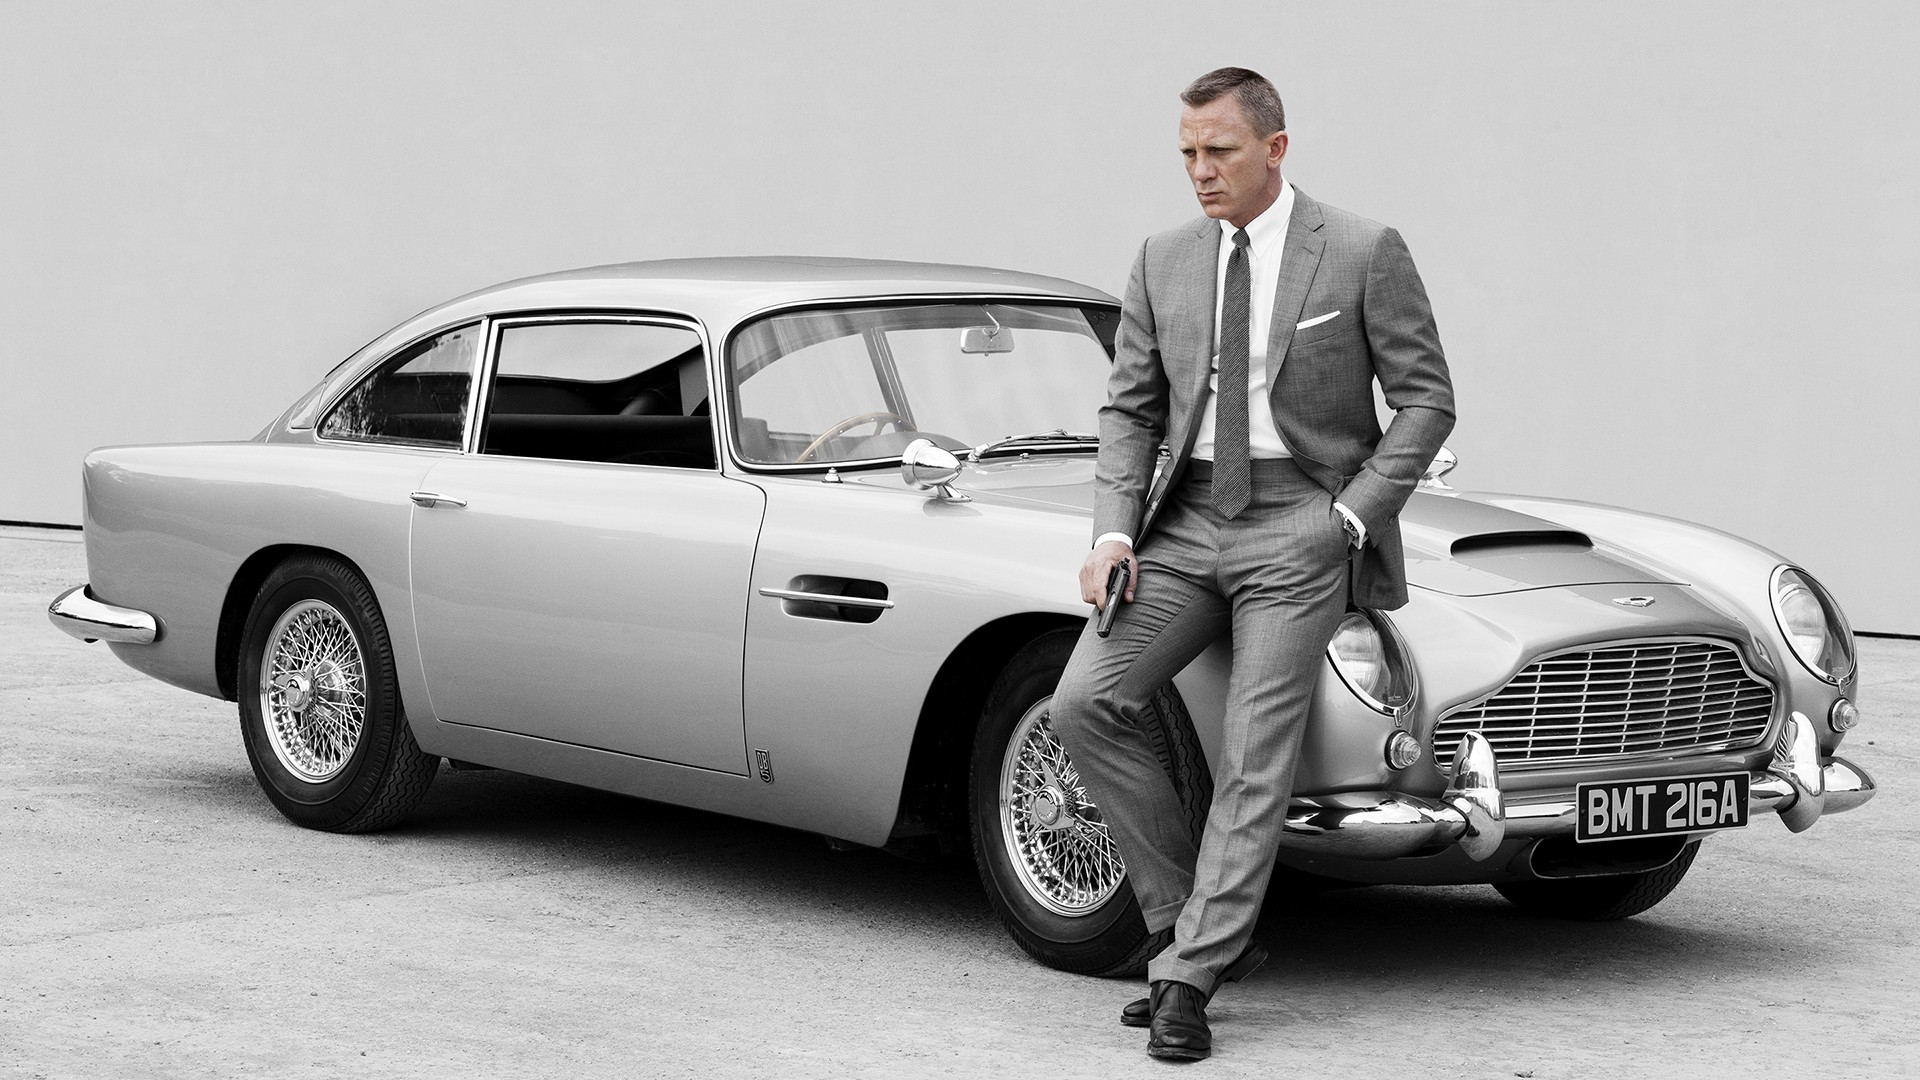 retromobile-2017-le-salon-international-des-voitures-de-collection-james_bond_daniel_craig_aston_martin_db5-folkr-03